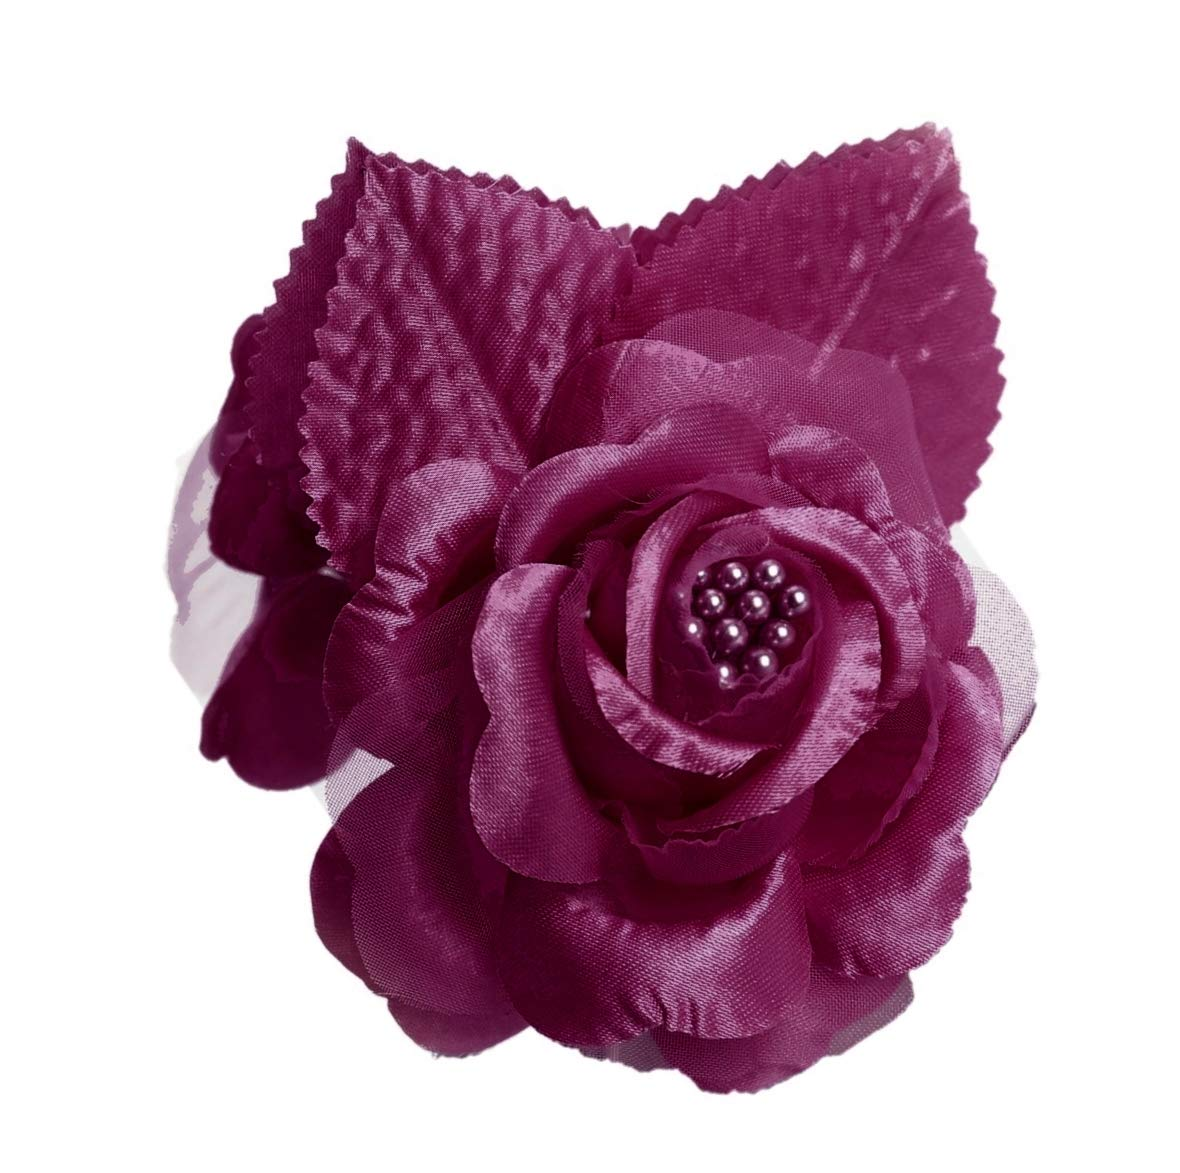 12-Silk-Roses-Wedding-Favor-Flower-Corsage-Pick-Burgundy